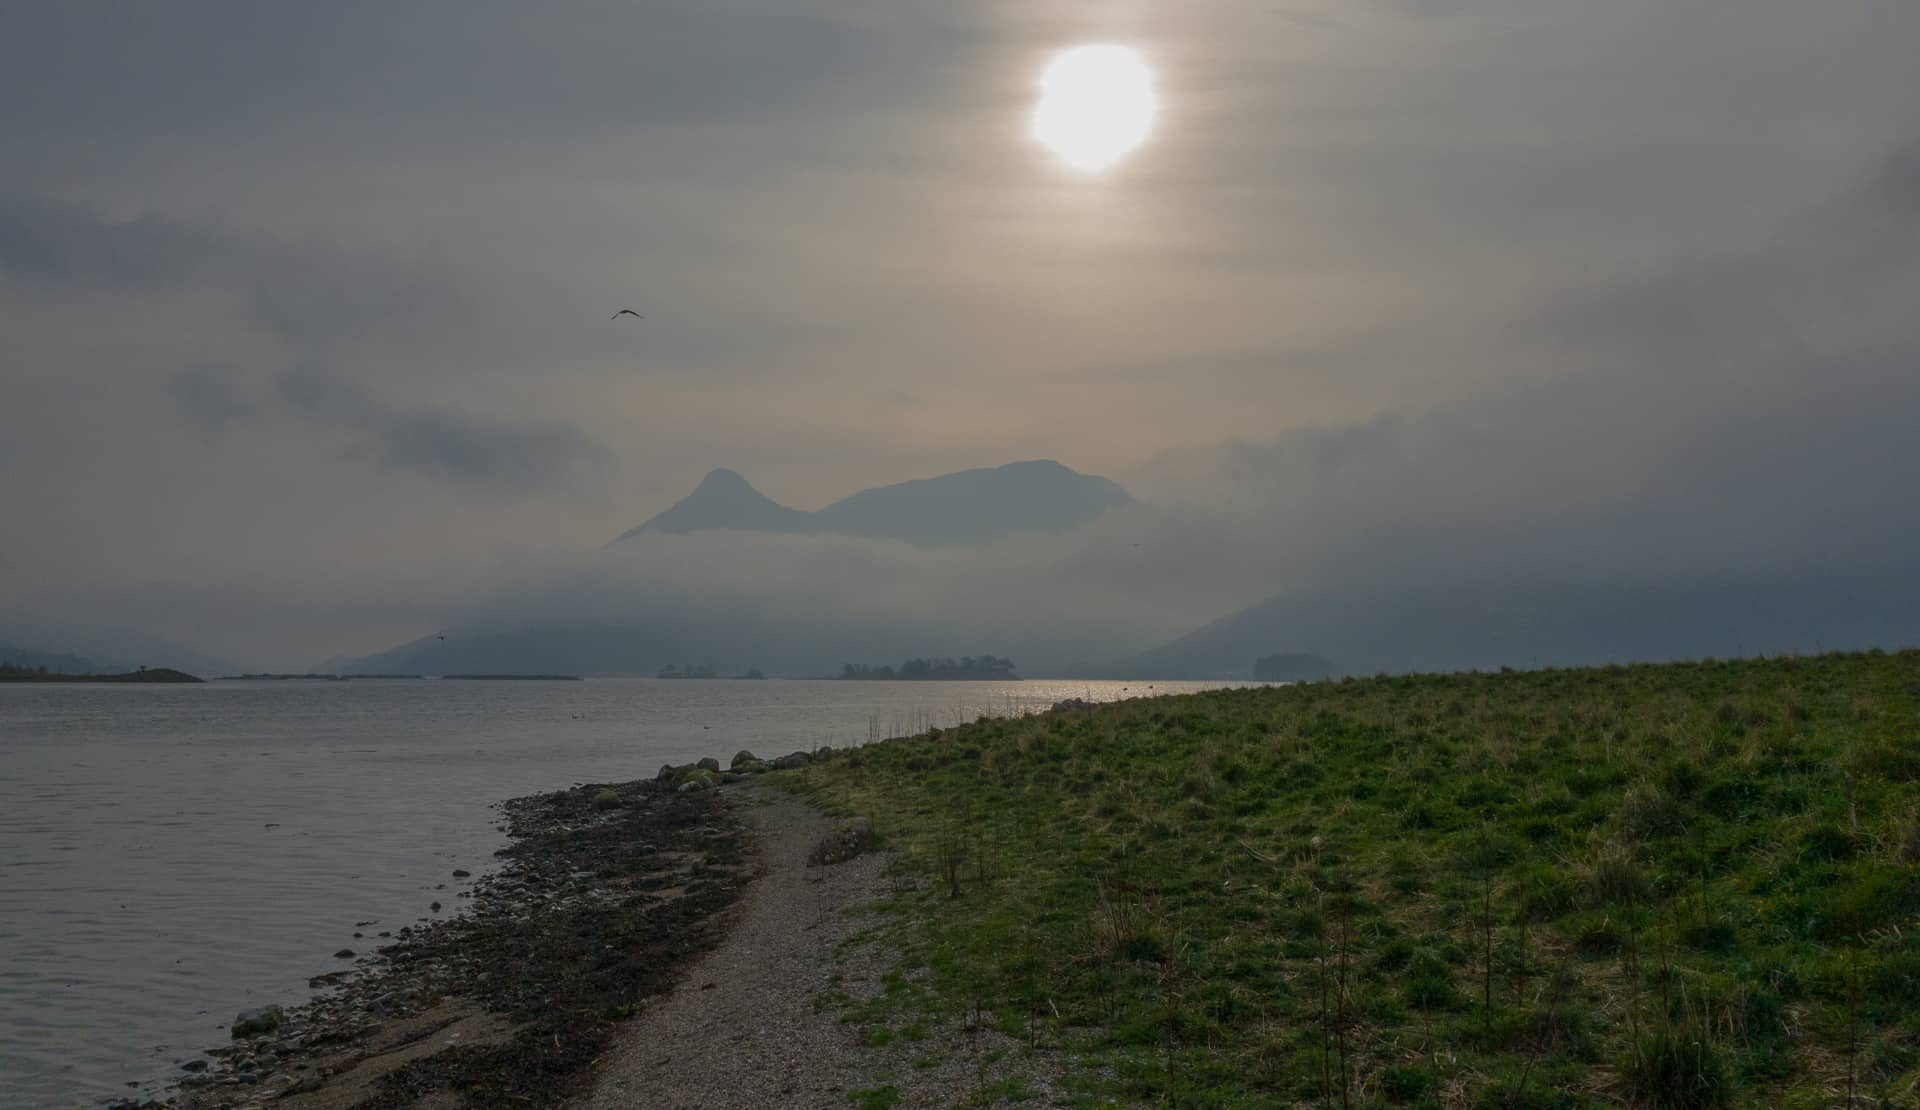 Hazy sunshine on Loch Leven, April 2019